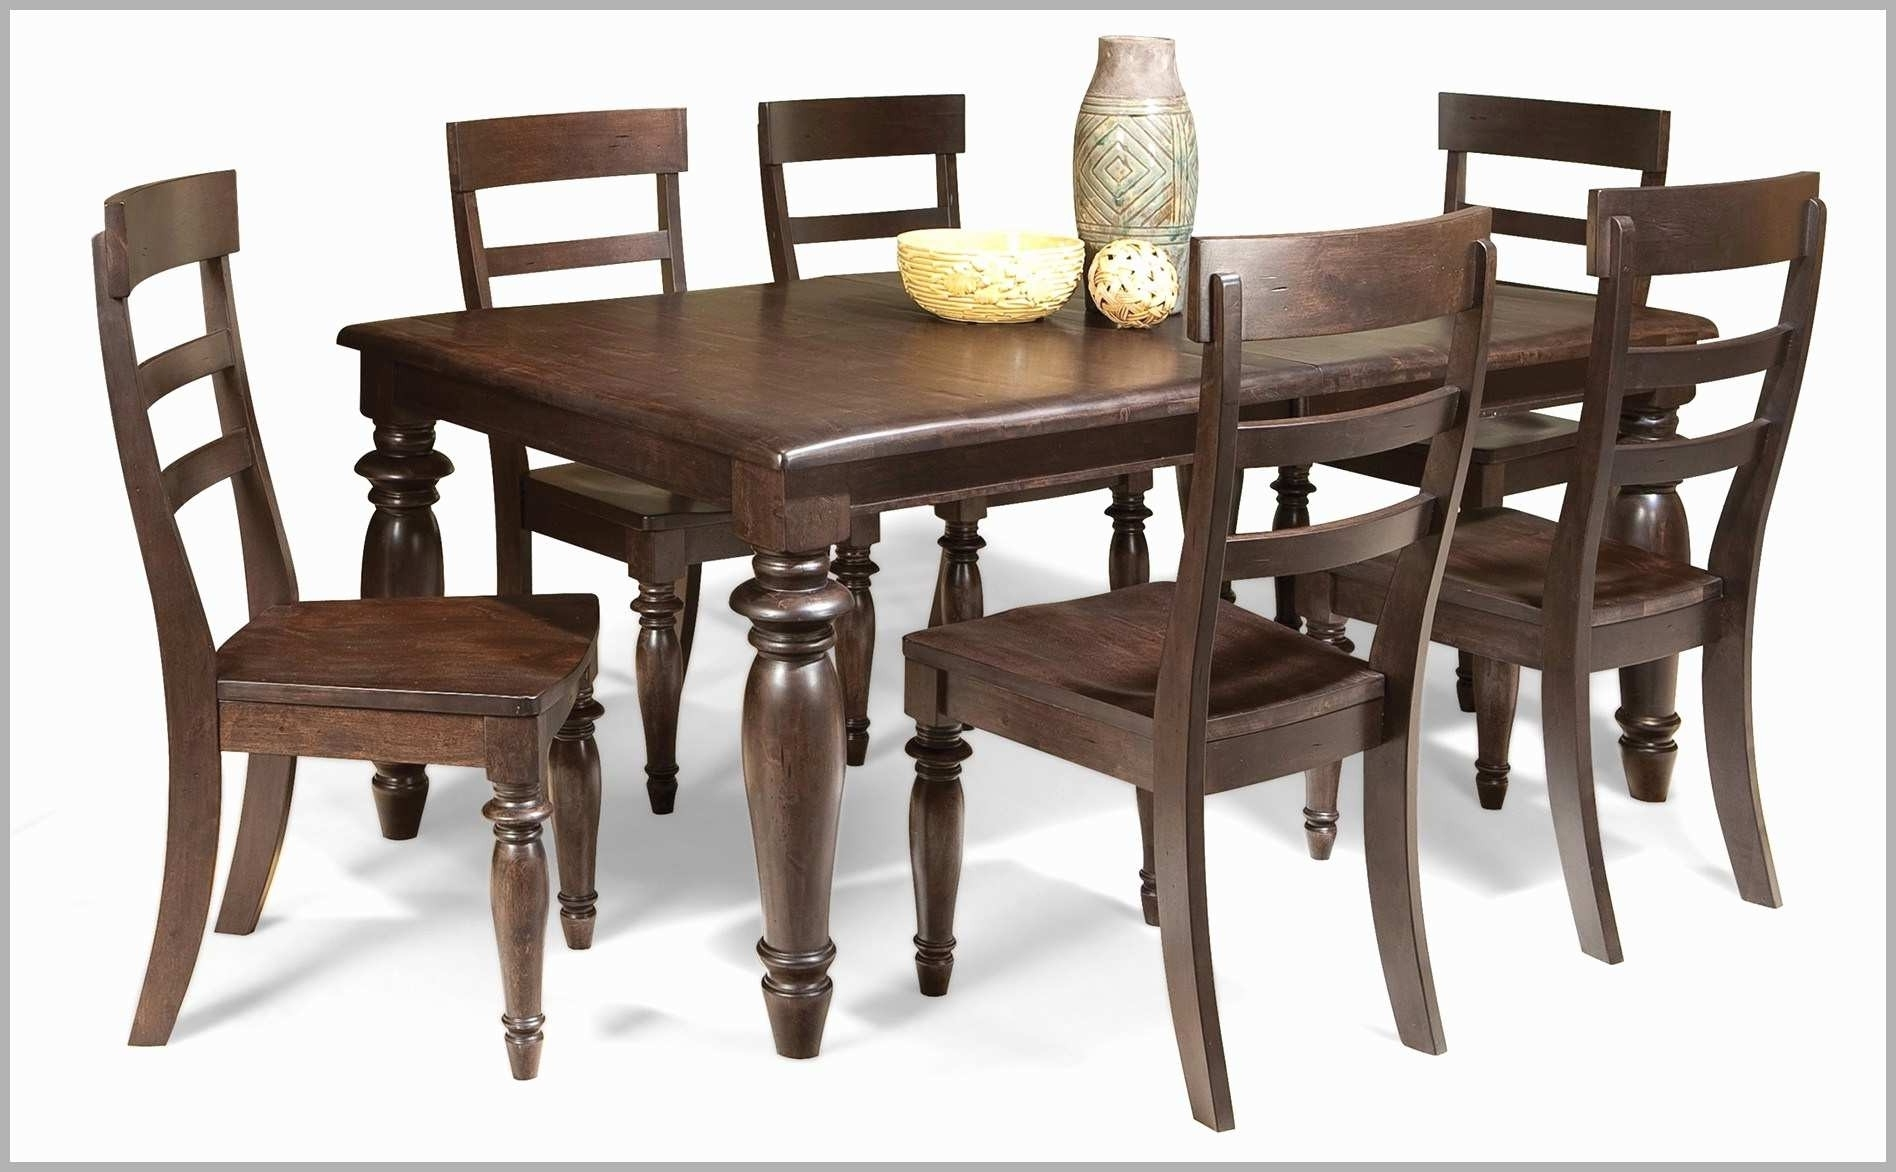 Famous Solid Oak Dining Tables And 8 Chairs Regarding Solid Oak Dining Room Table And 8 Chairs Inspirational 8 Seater (View 5 of 25)